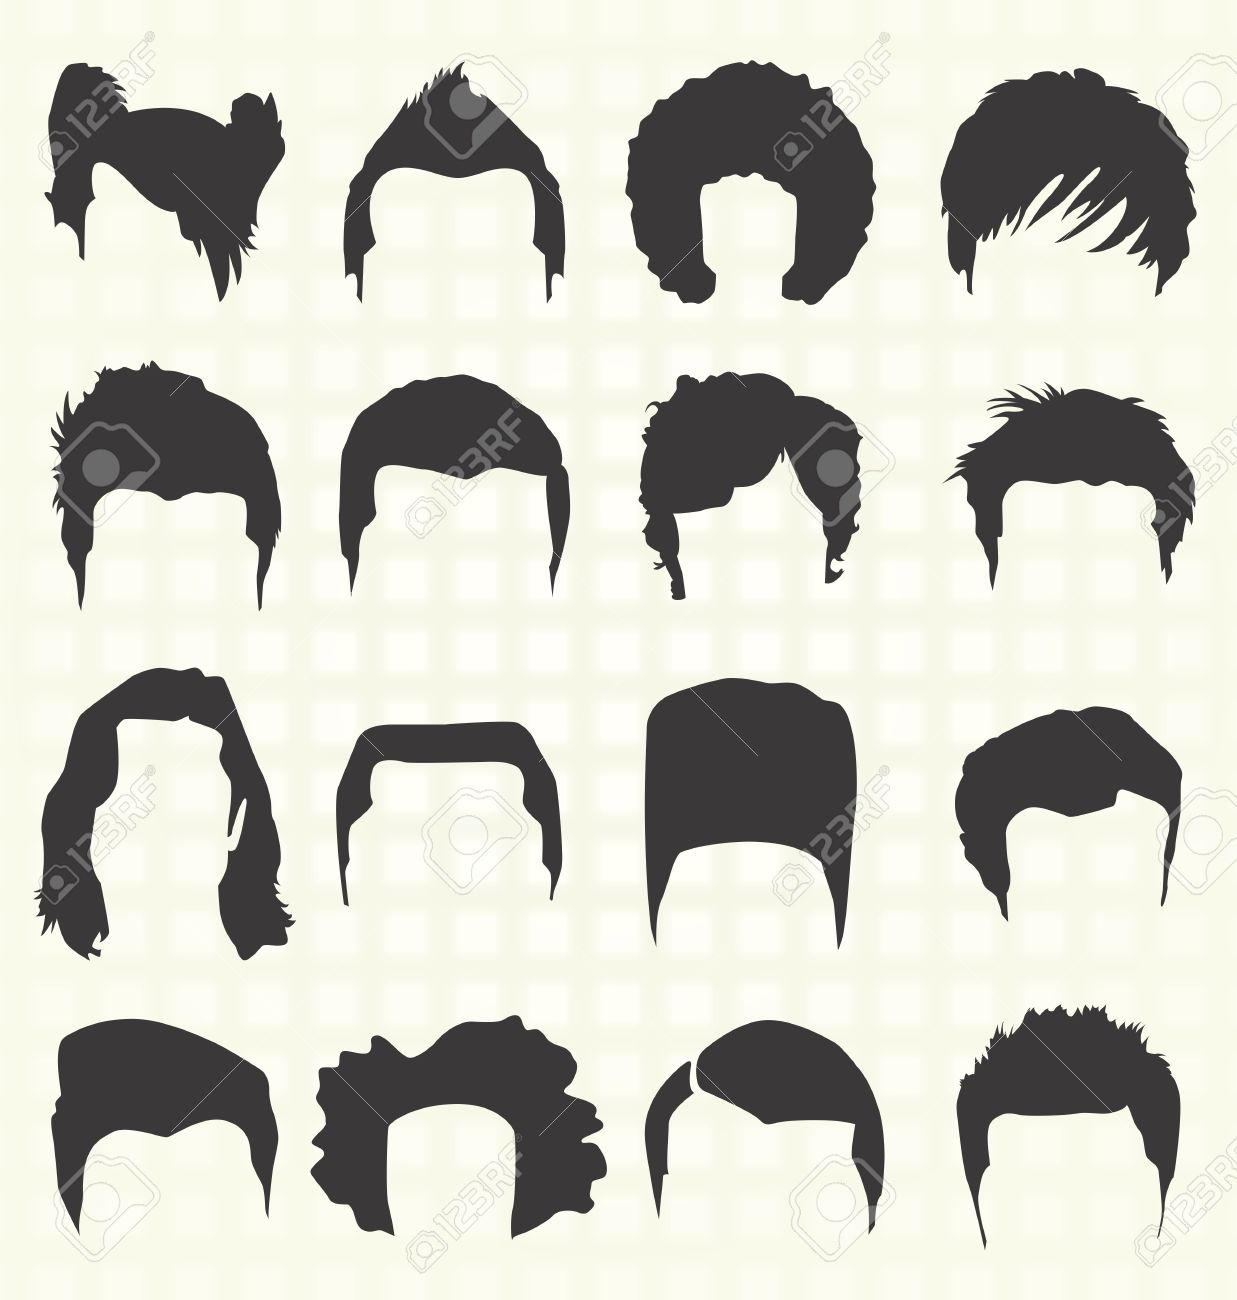 Afro Hair Vector Men s Hairstyle Elements  hair